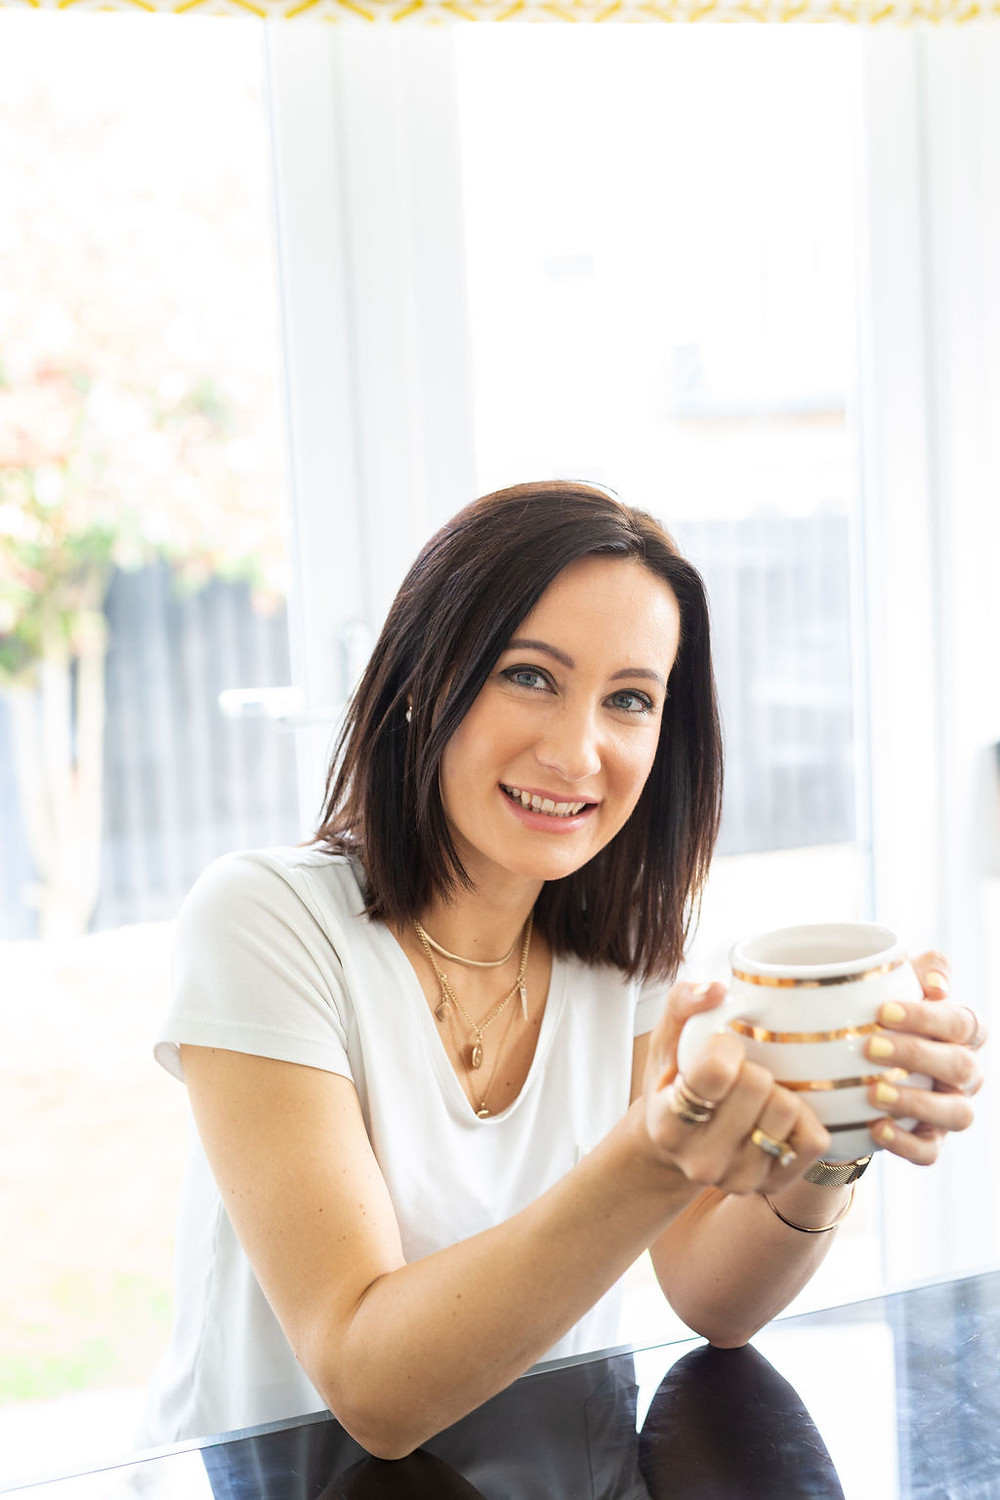 Kate, Founder Of Tidy Mind